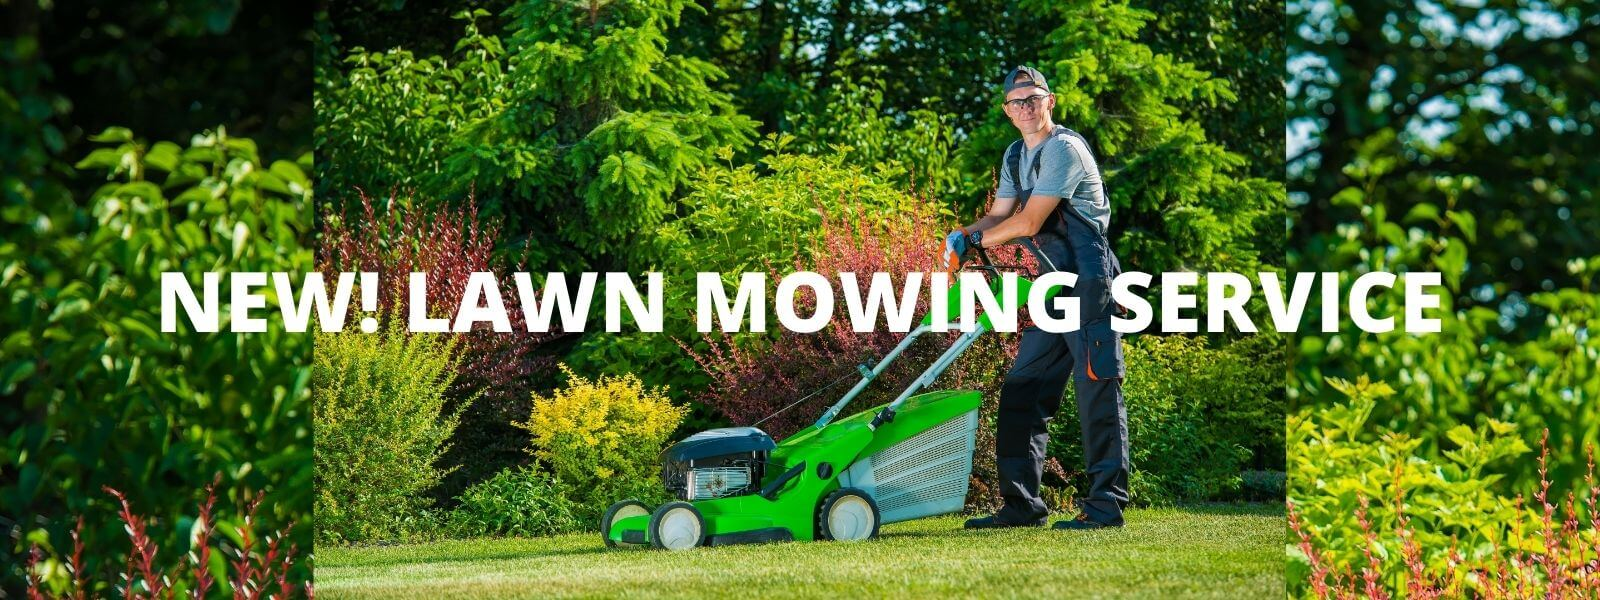 LAWN-MOWING-SERVICE (1)